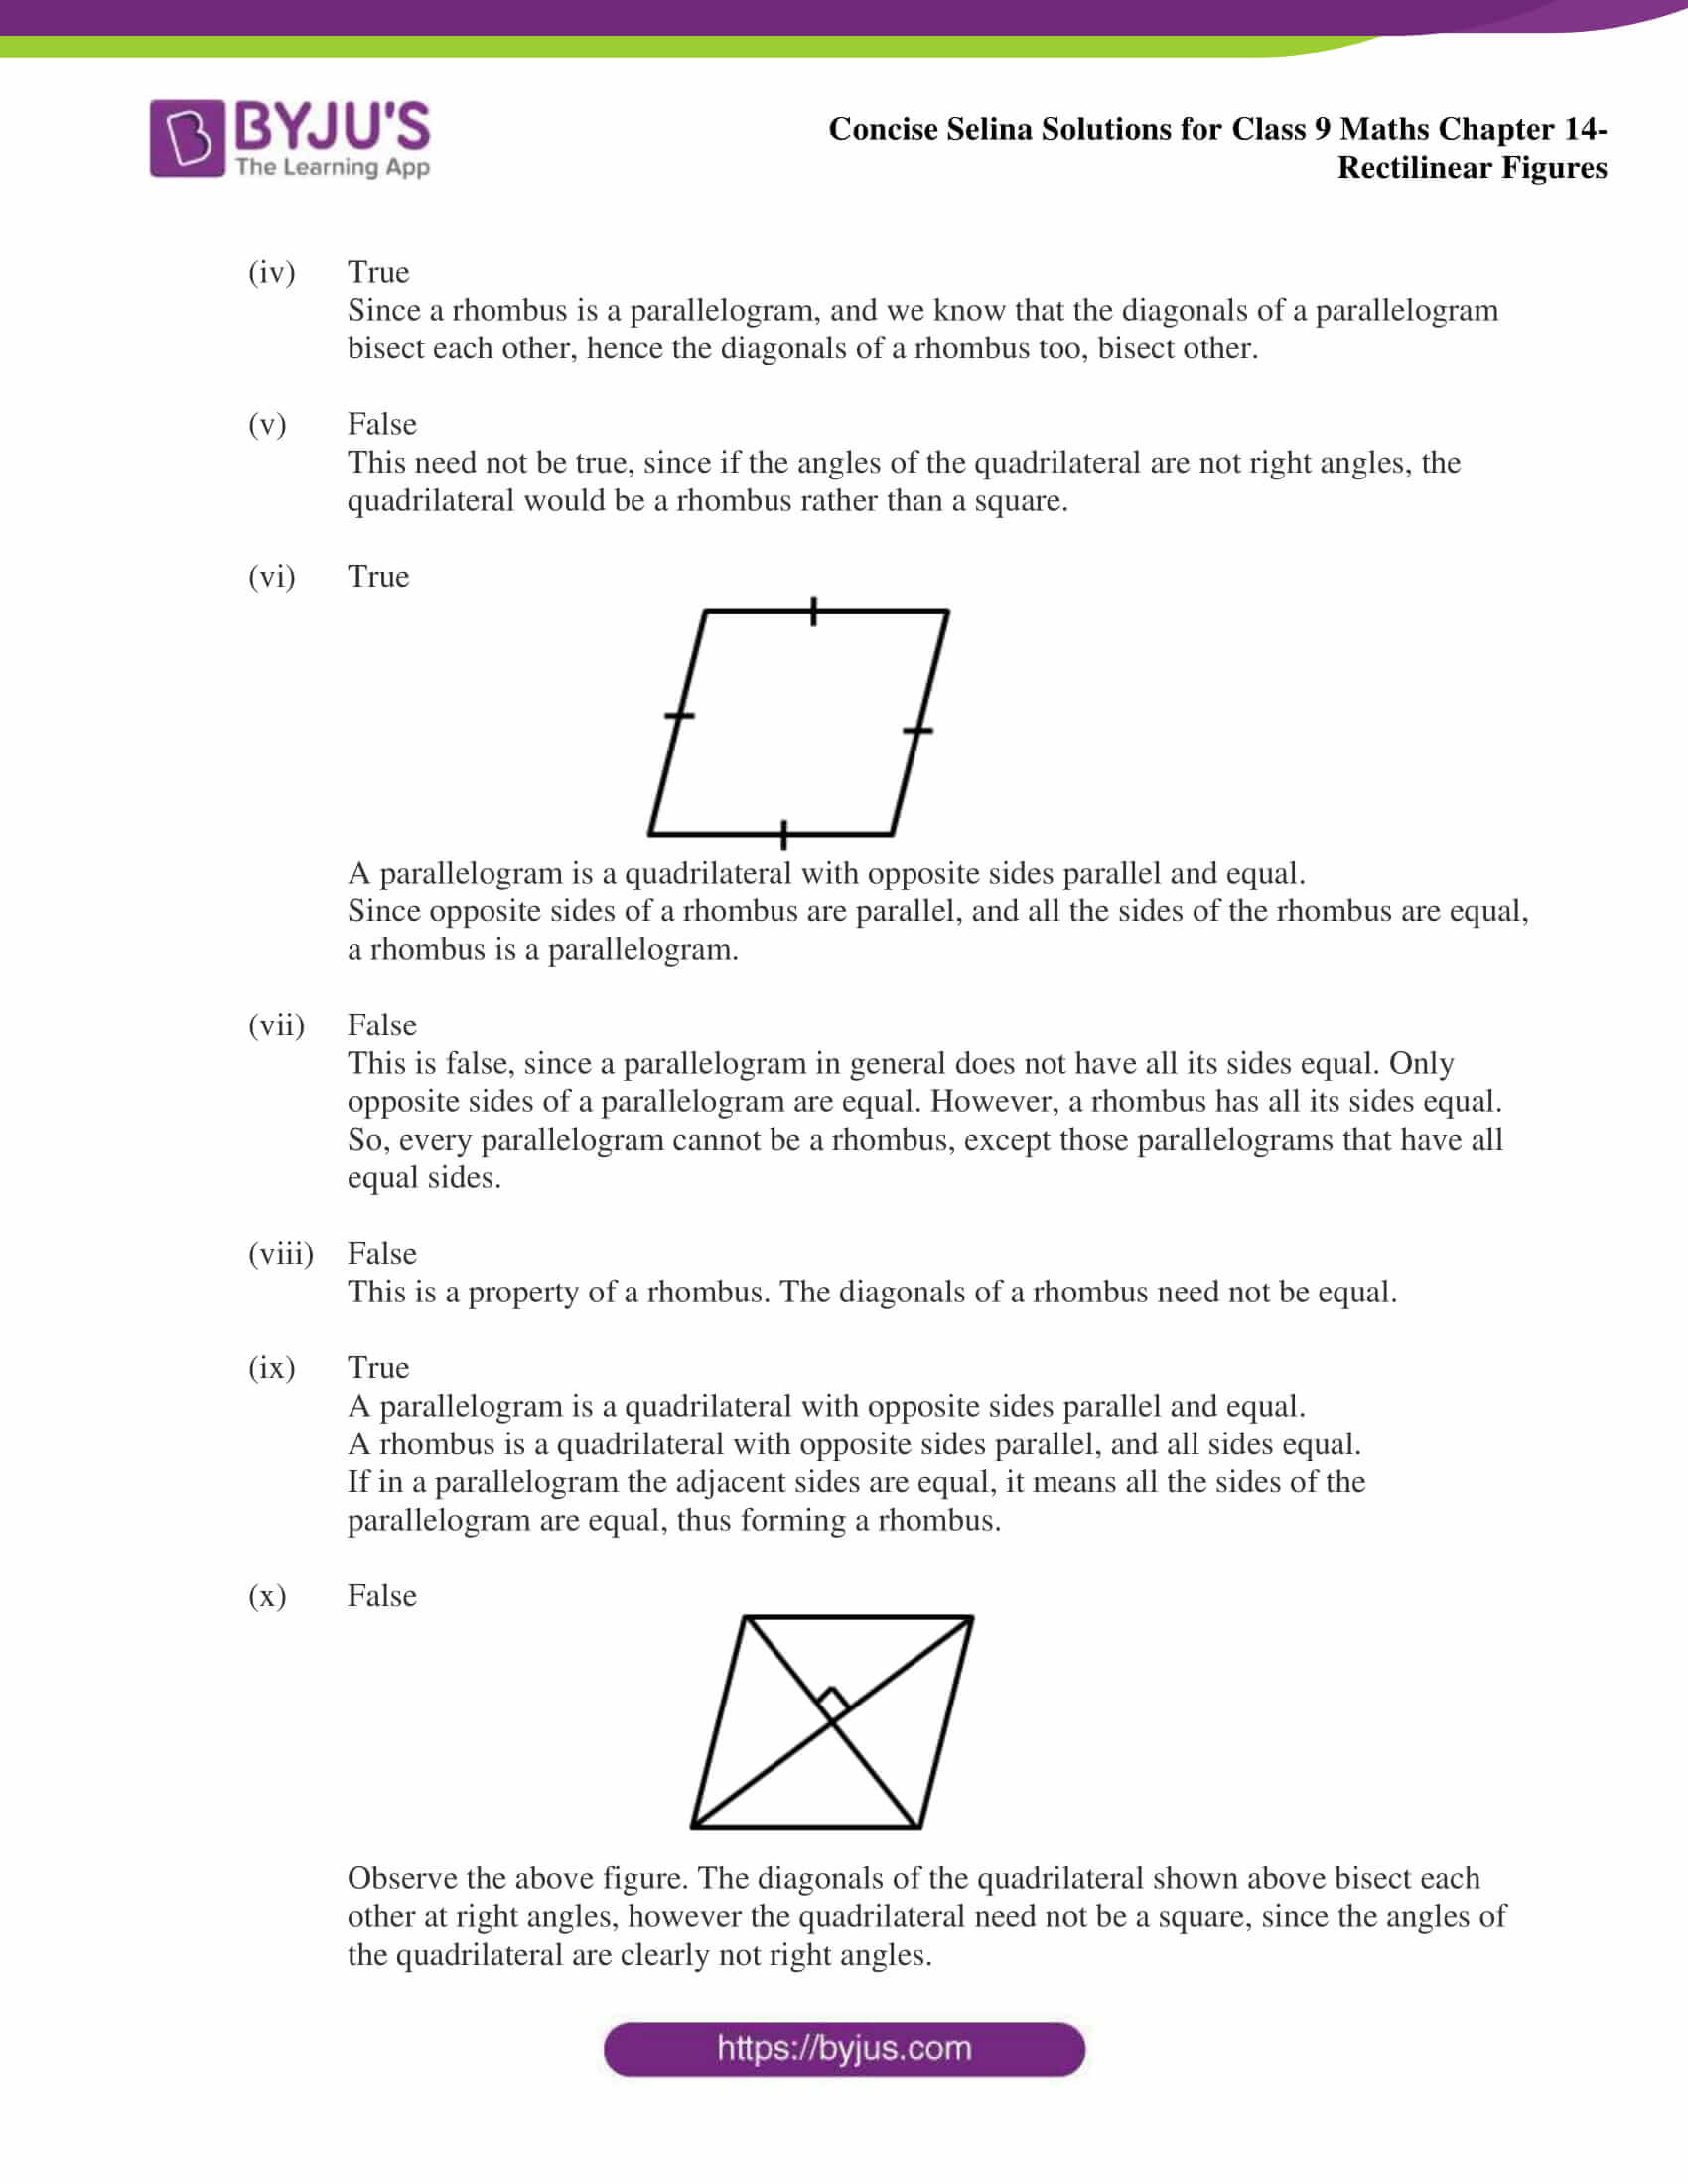 selina Solutions for Class 9 Maths Chapter 14 part 07